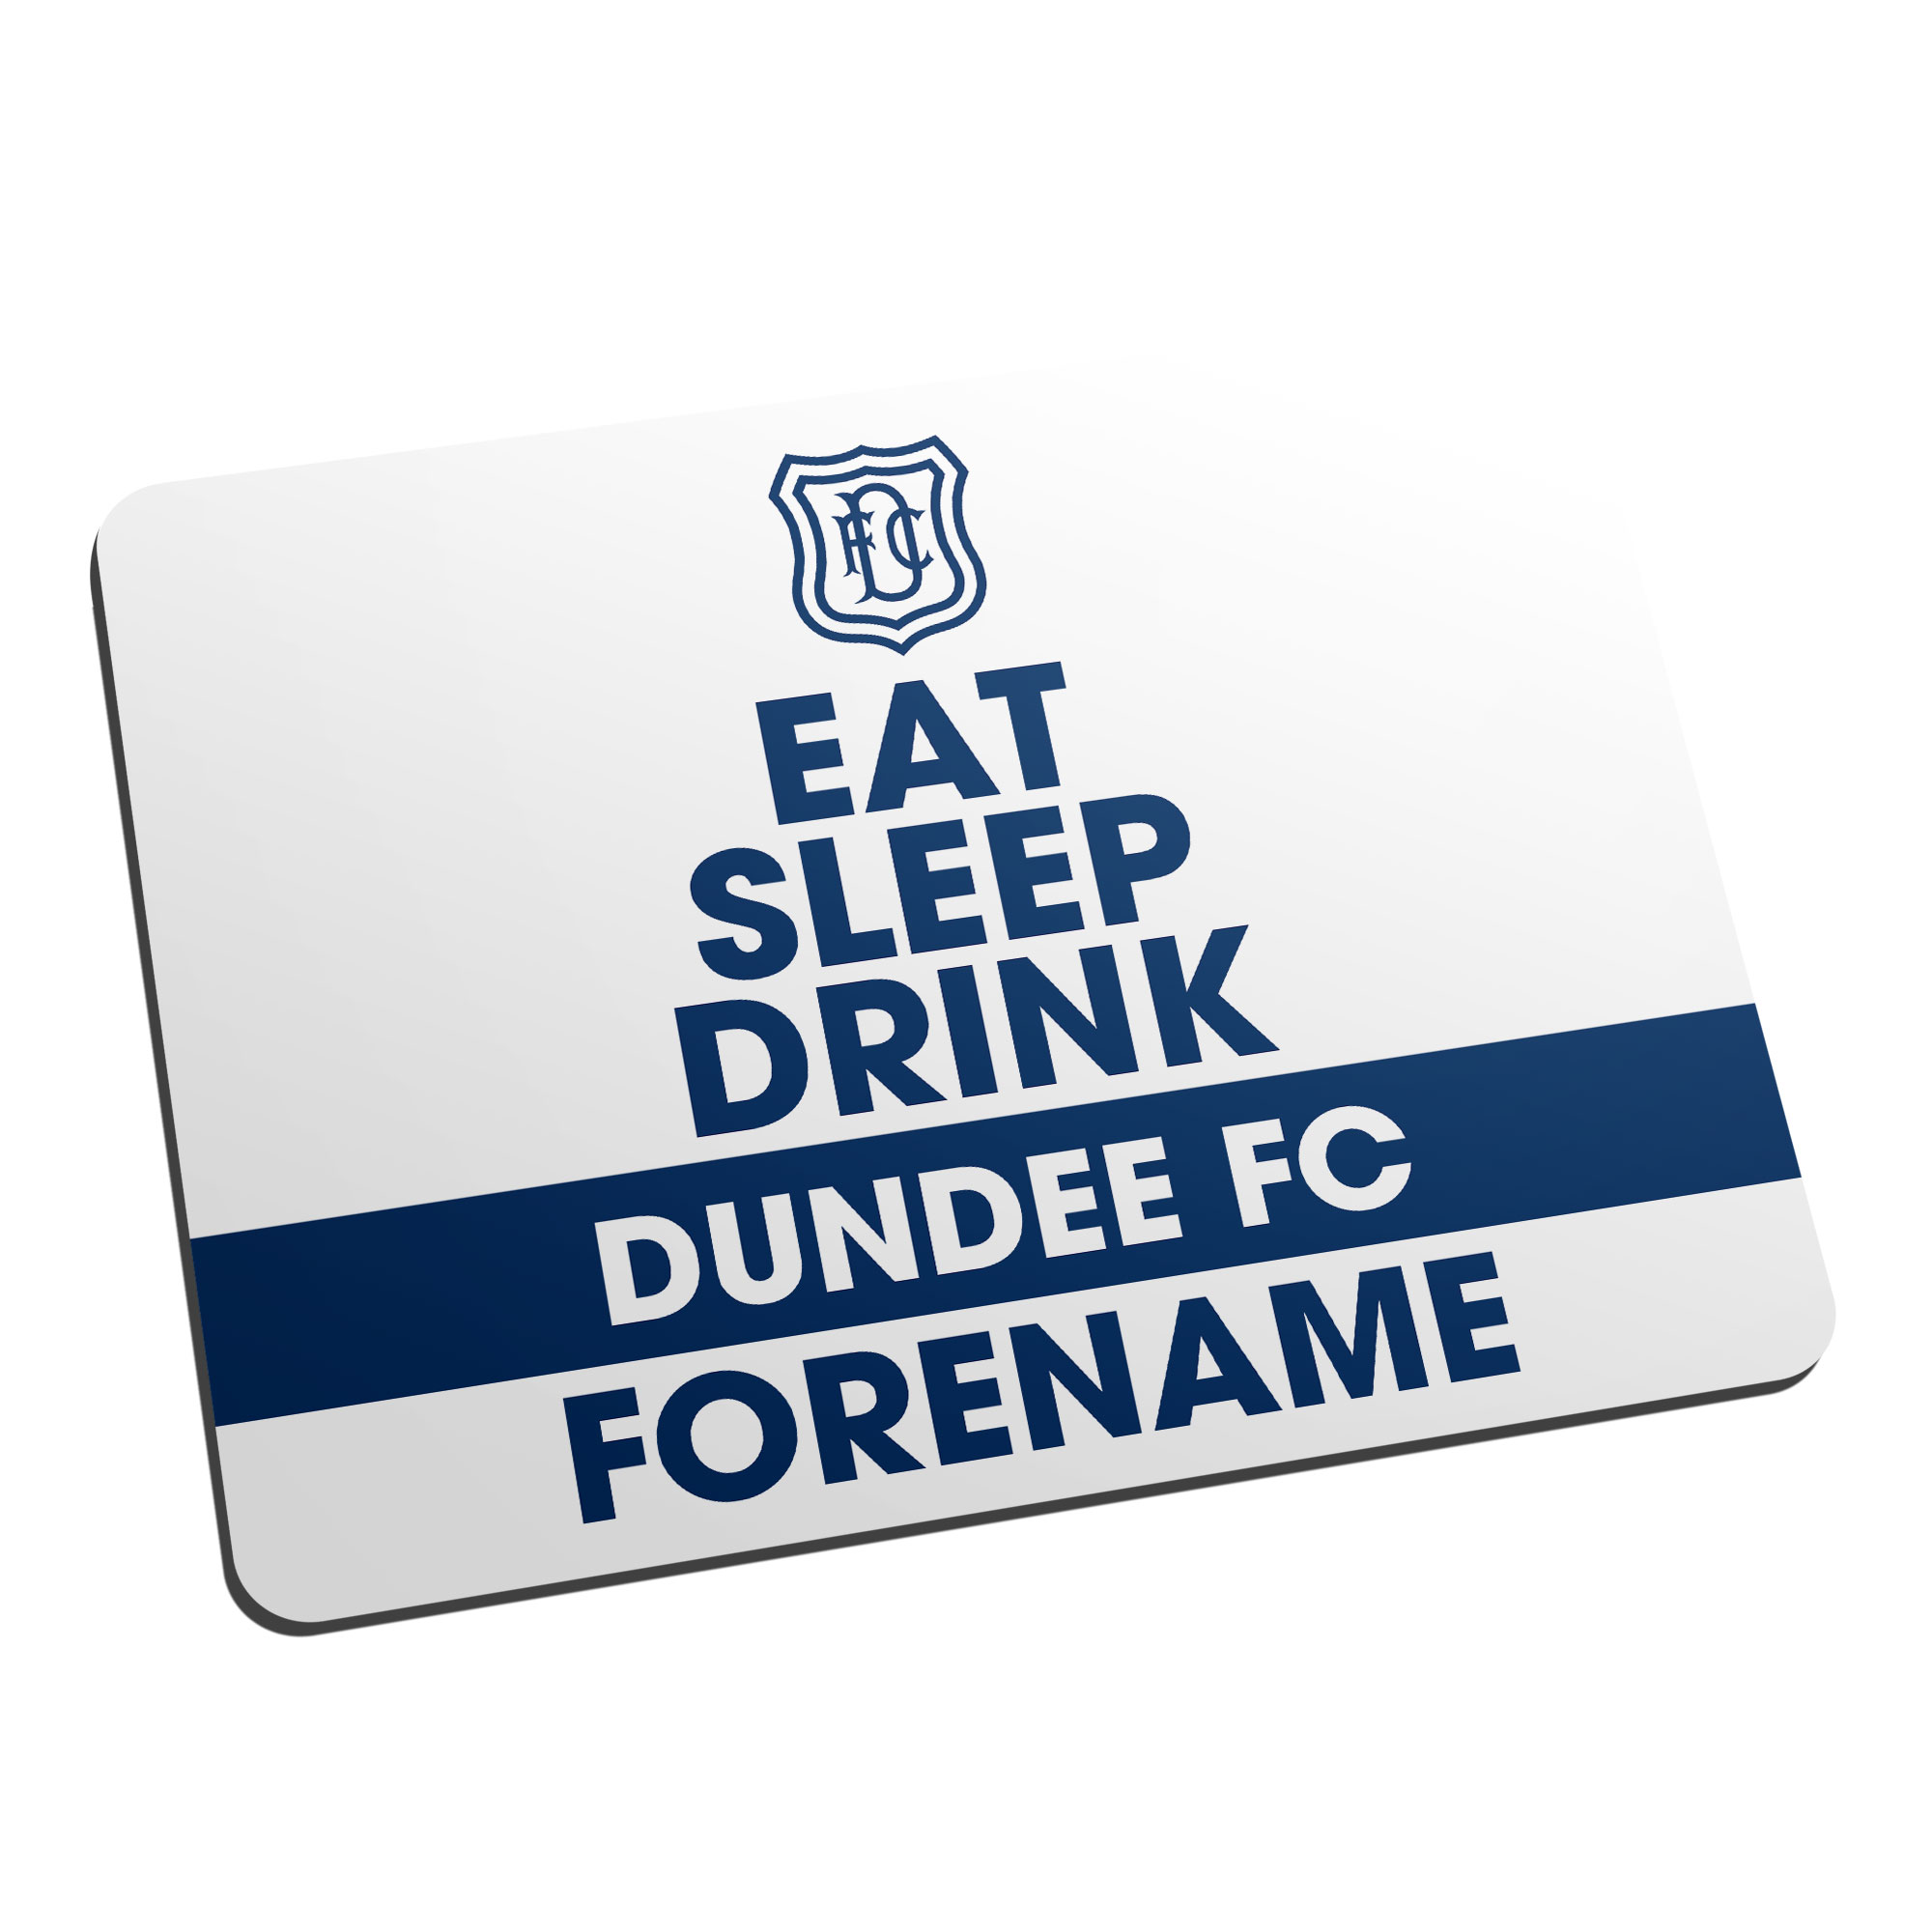 Dundee FC Eat Sleep Drink Mouse Mat